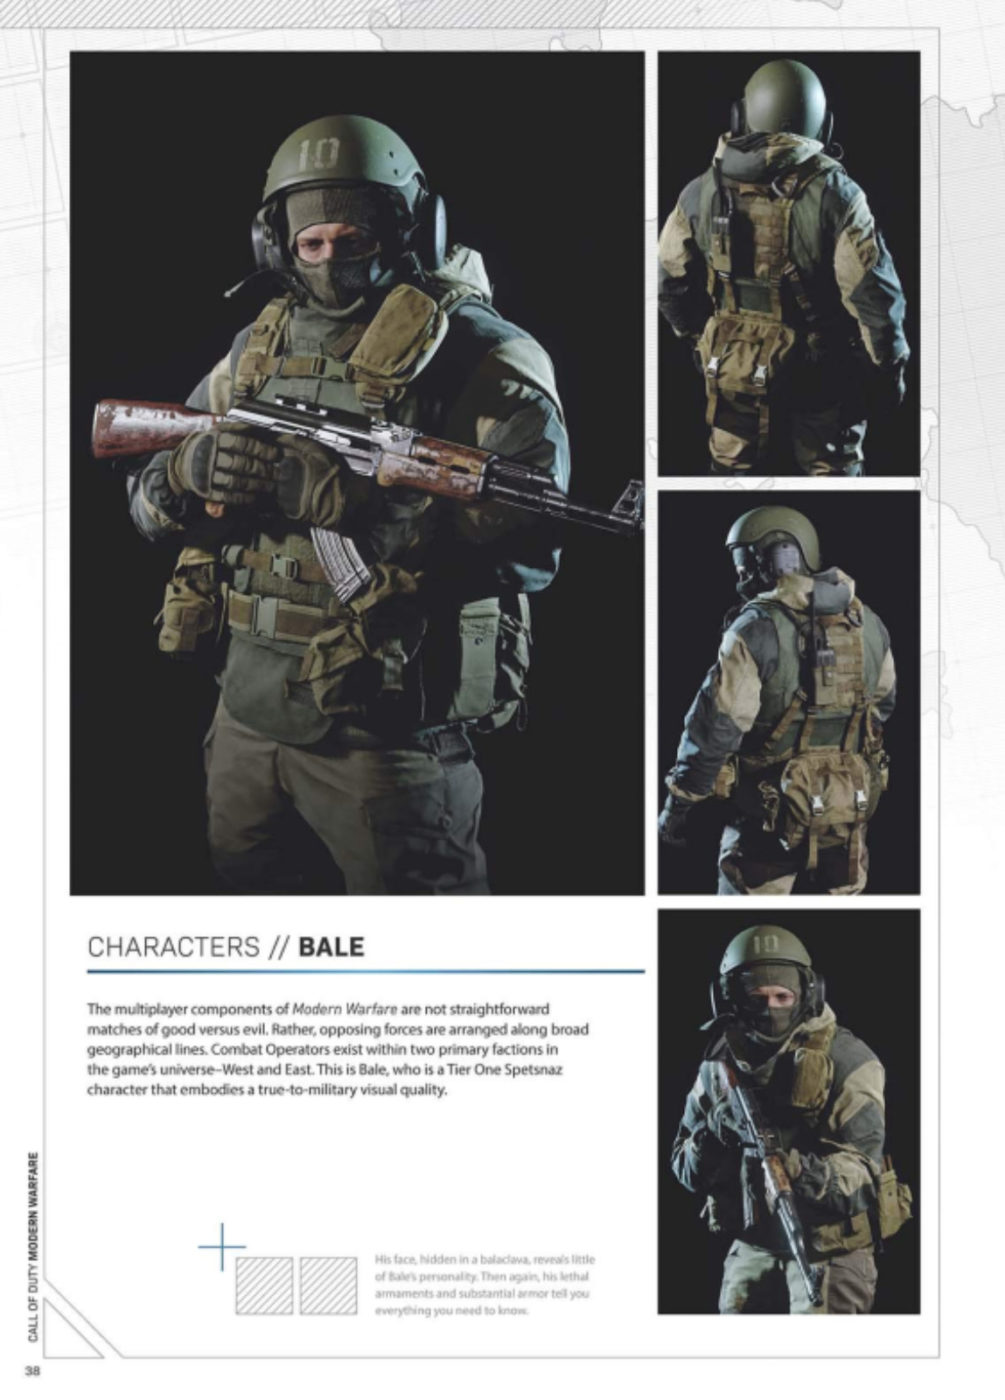 Modern Warfare tattoo customization, Call of Duty: Modern Warfare Tattoo Customization Confirmed,  Factions, and New Character Details Revealed, MP1st, MP1st